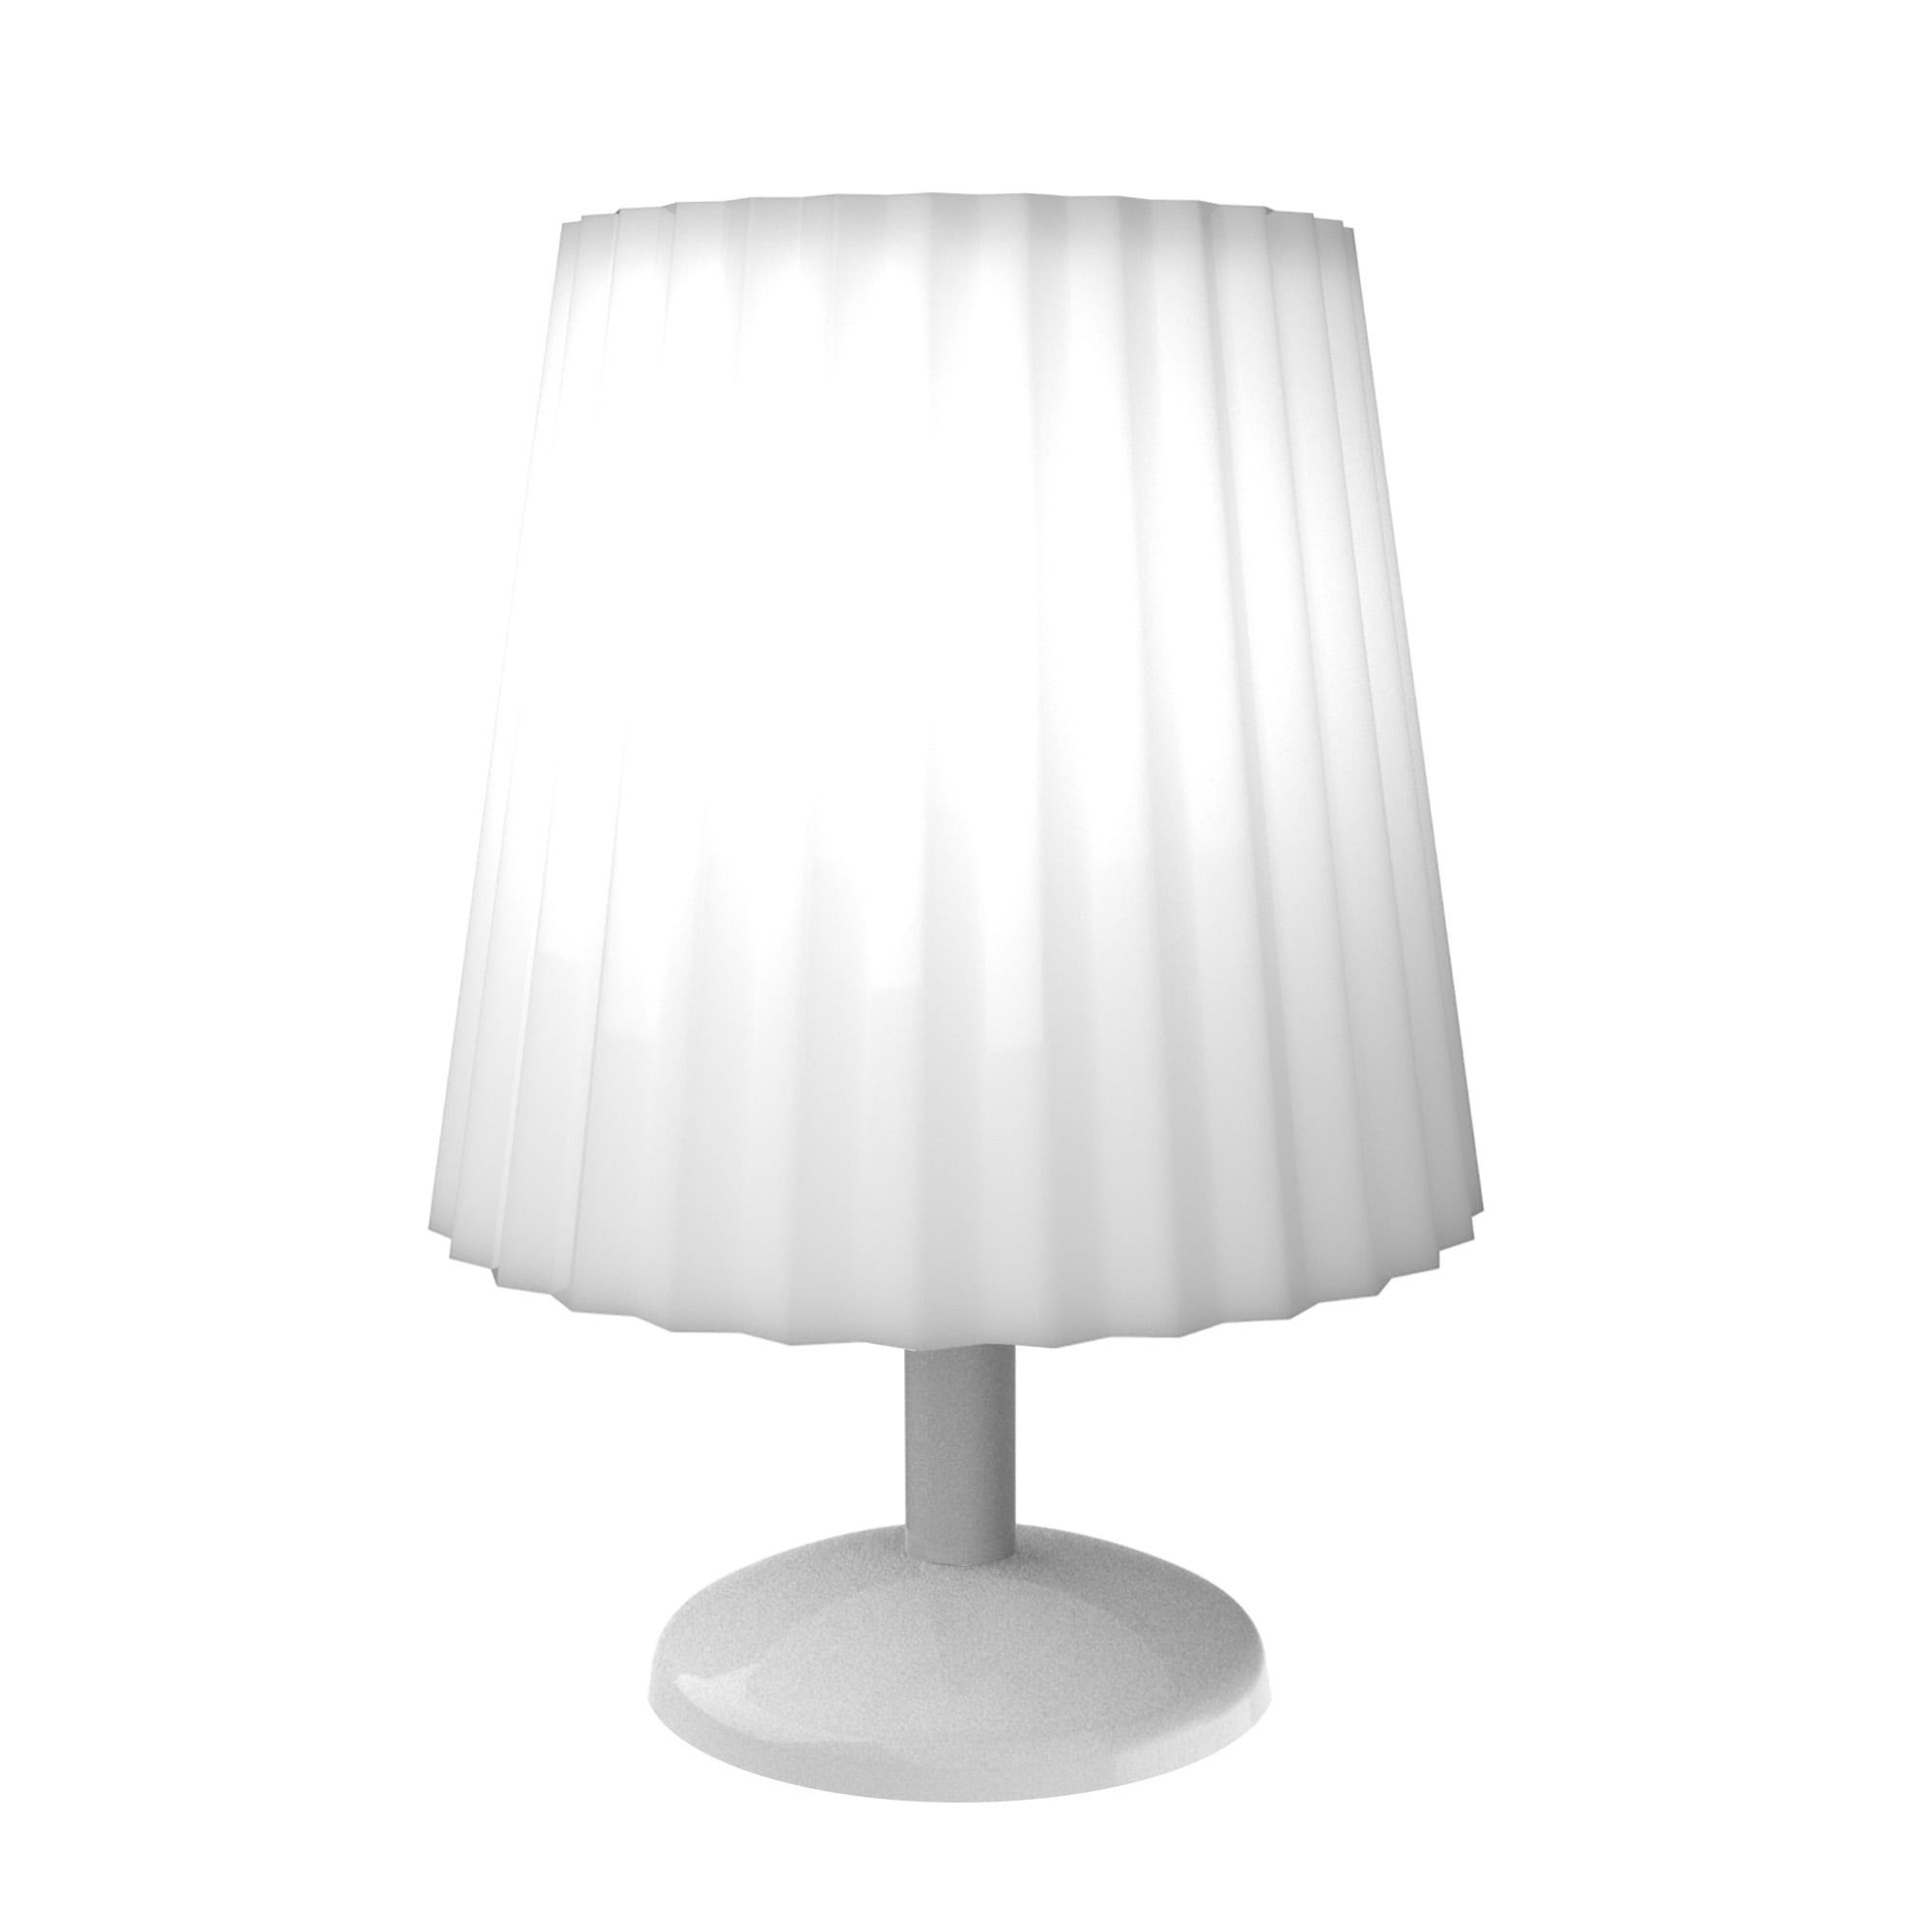 Touch Sensor Lamp  Dimmable, Battery Operated LED Light By Windsor Home  (White)   Free Shipping On Orders Over $45   Overstock.com   25504994